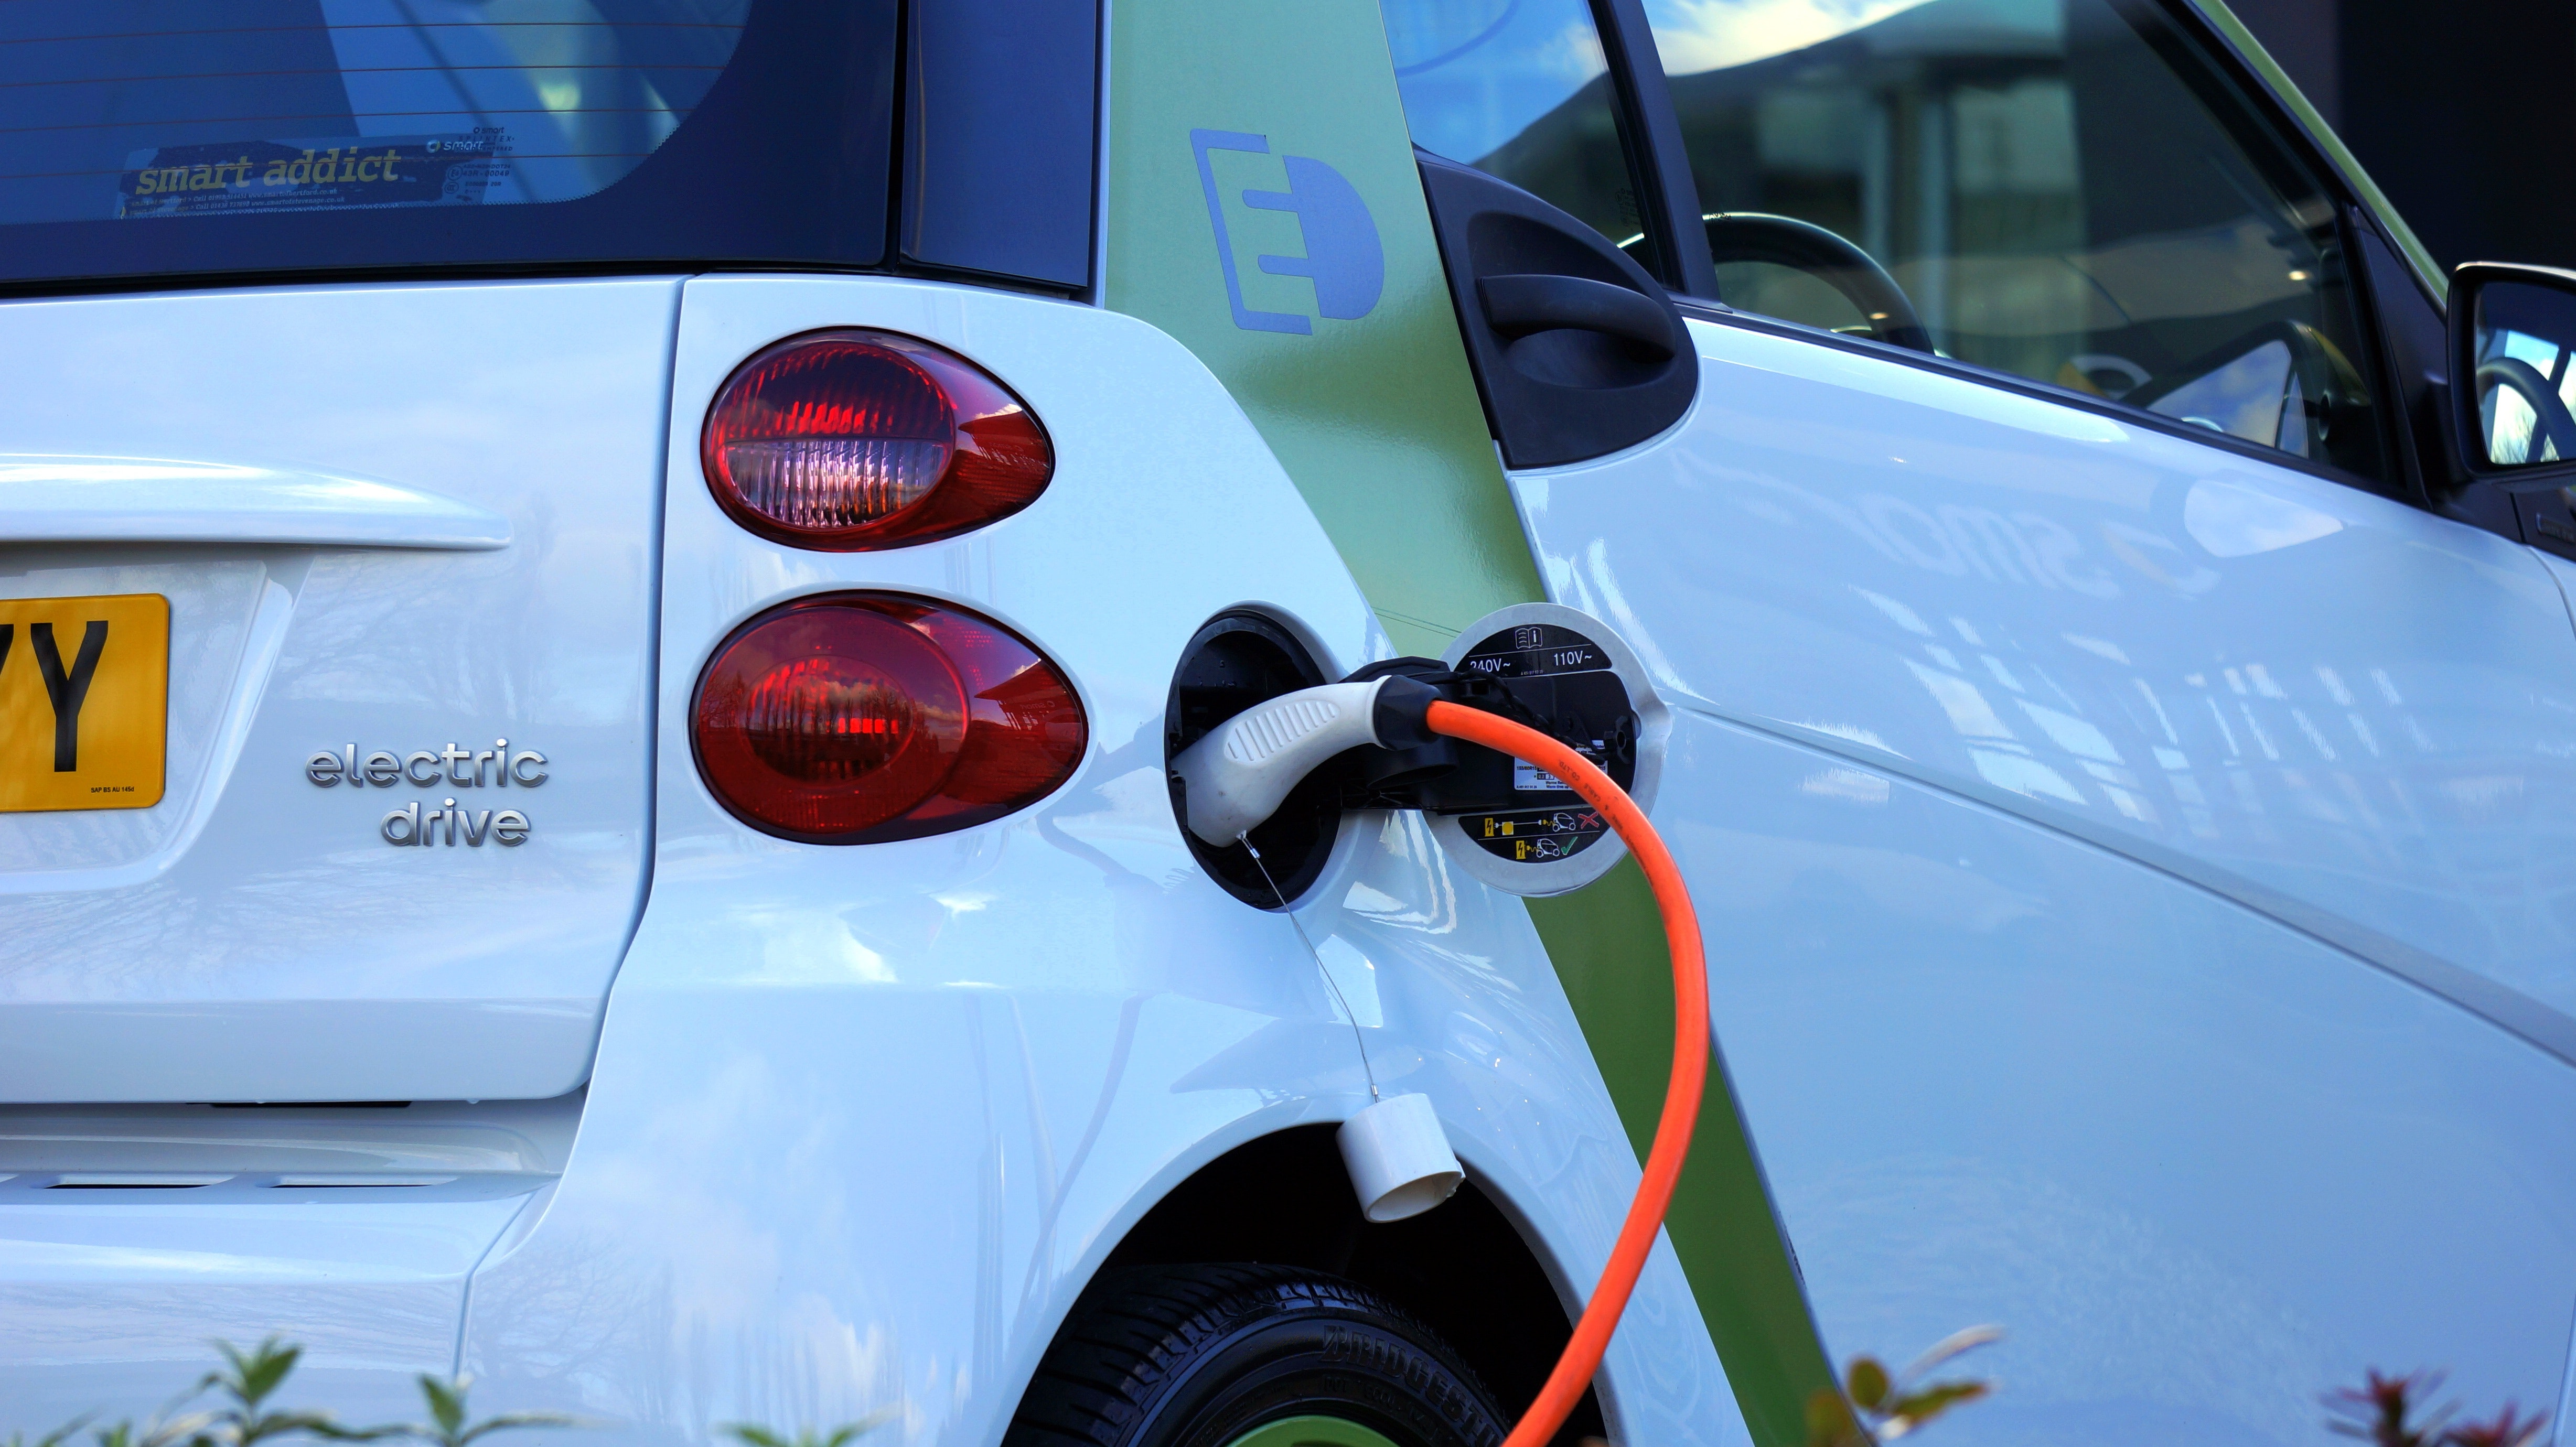 electric car service